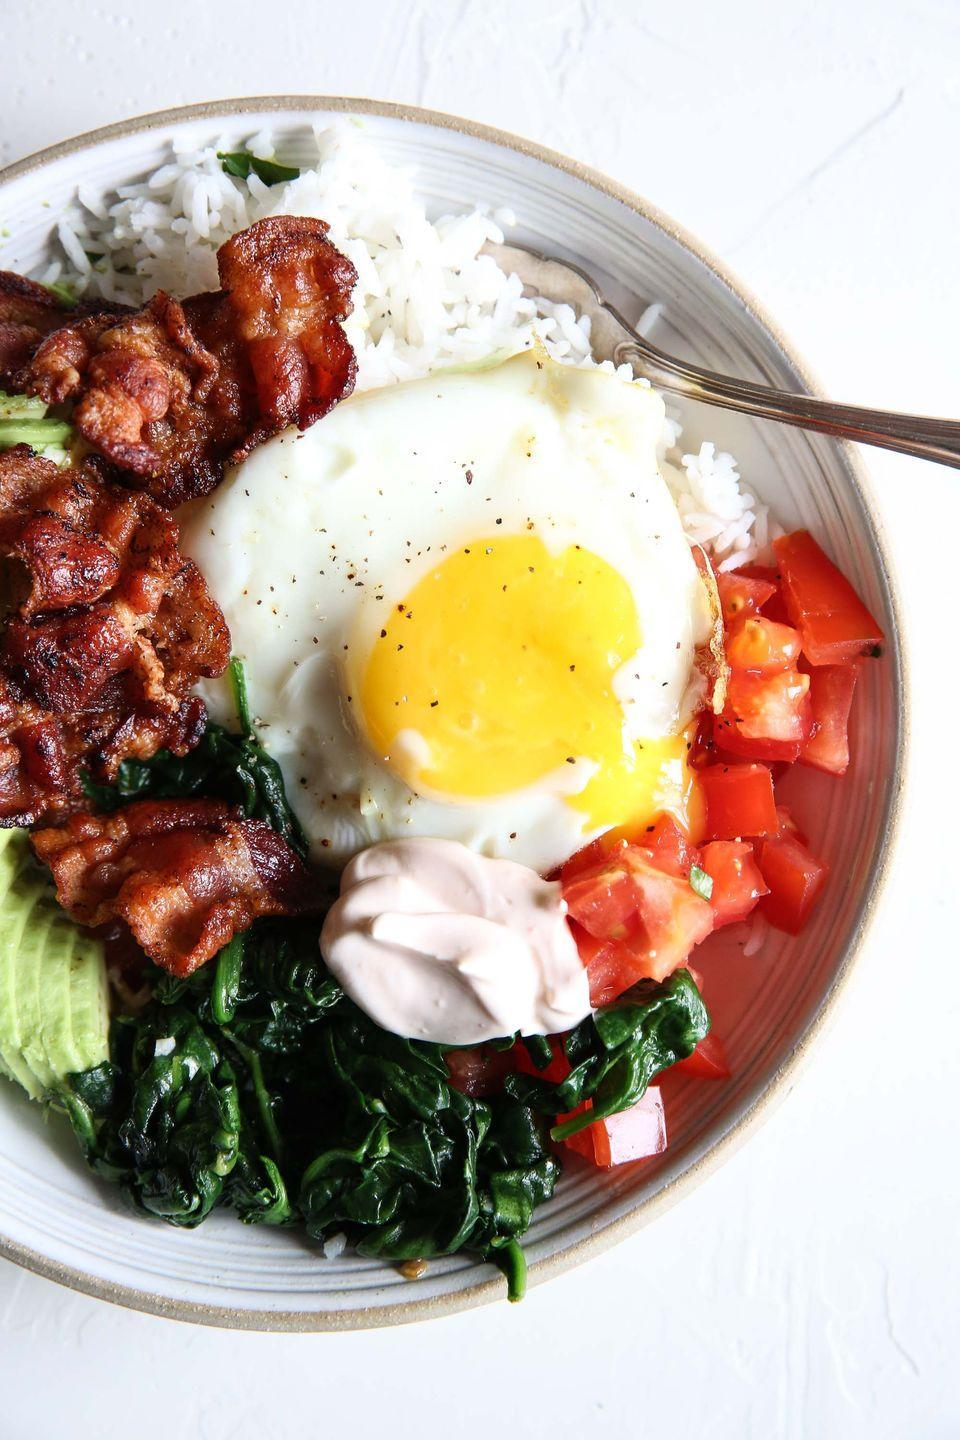 """<p>BLTs are breaking out from bread.</p><p>Get the recipe from <a href=""""https://www.delish.com/cooking/recipe-ideas/recipes/a51789/blt-rice-bowl-recipe/"""" rel=""""nofollow noopener"""" target=""""_blank"""" data-ylk=""""slk:Delish"""" class=""""link rapid-noclick-resp"""">Delish</a>. </p>"""